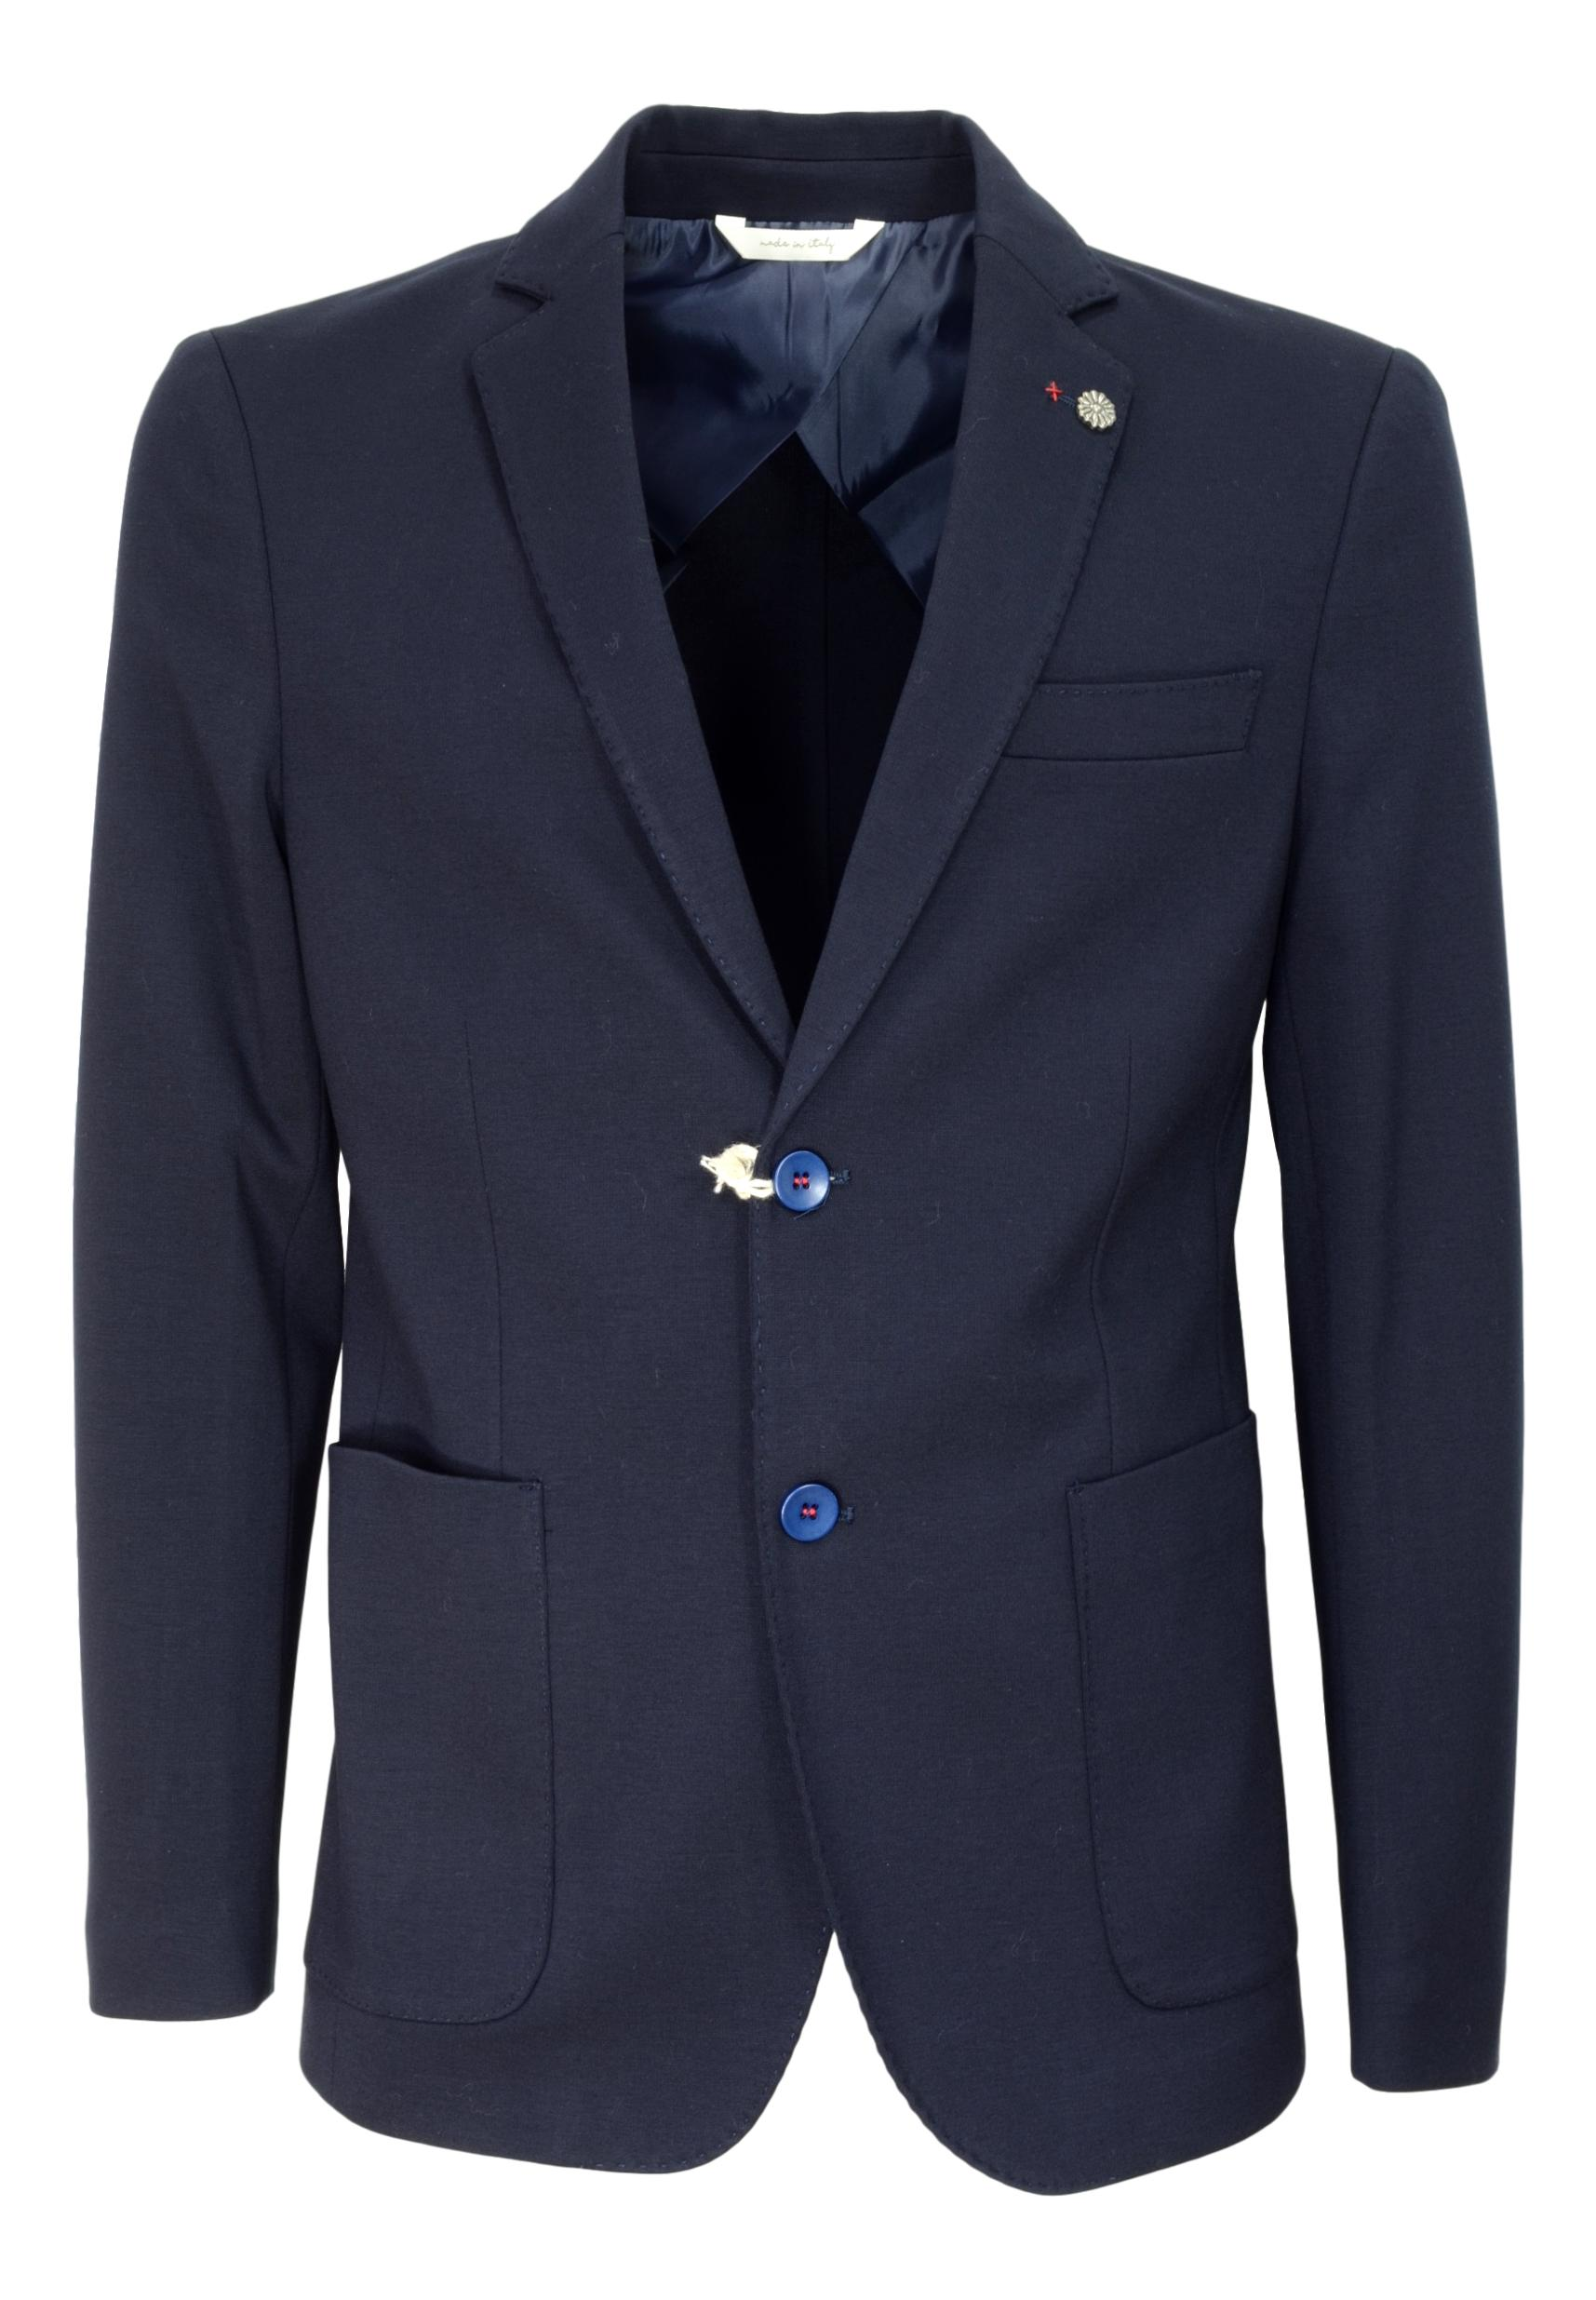 ALESSANDRO GILLES GIACCA UOMO EXTRA SLIM FIT COLORE BLU ART. GMAT 2356